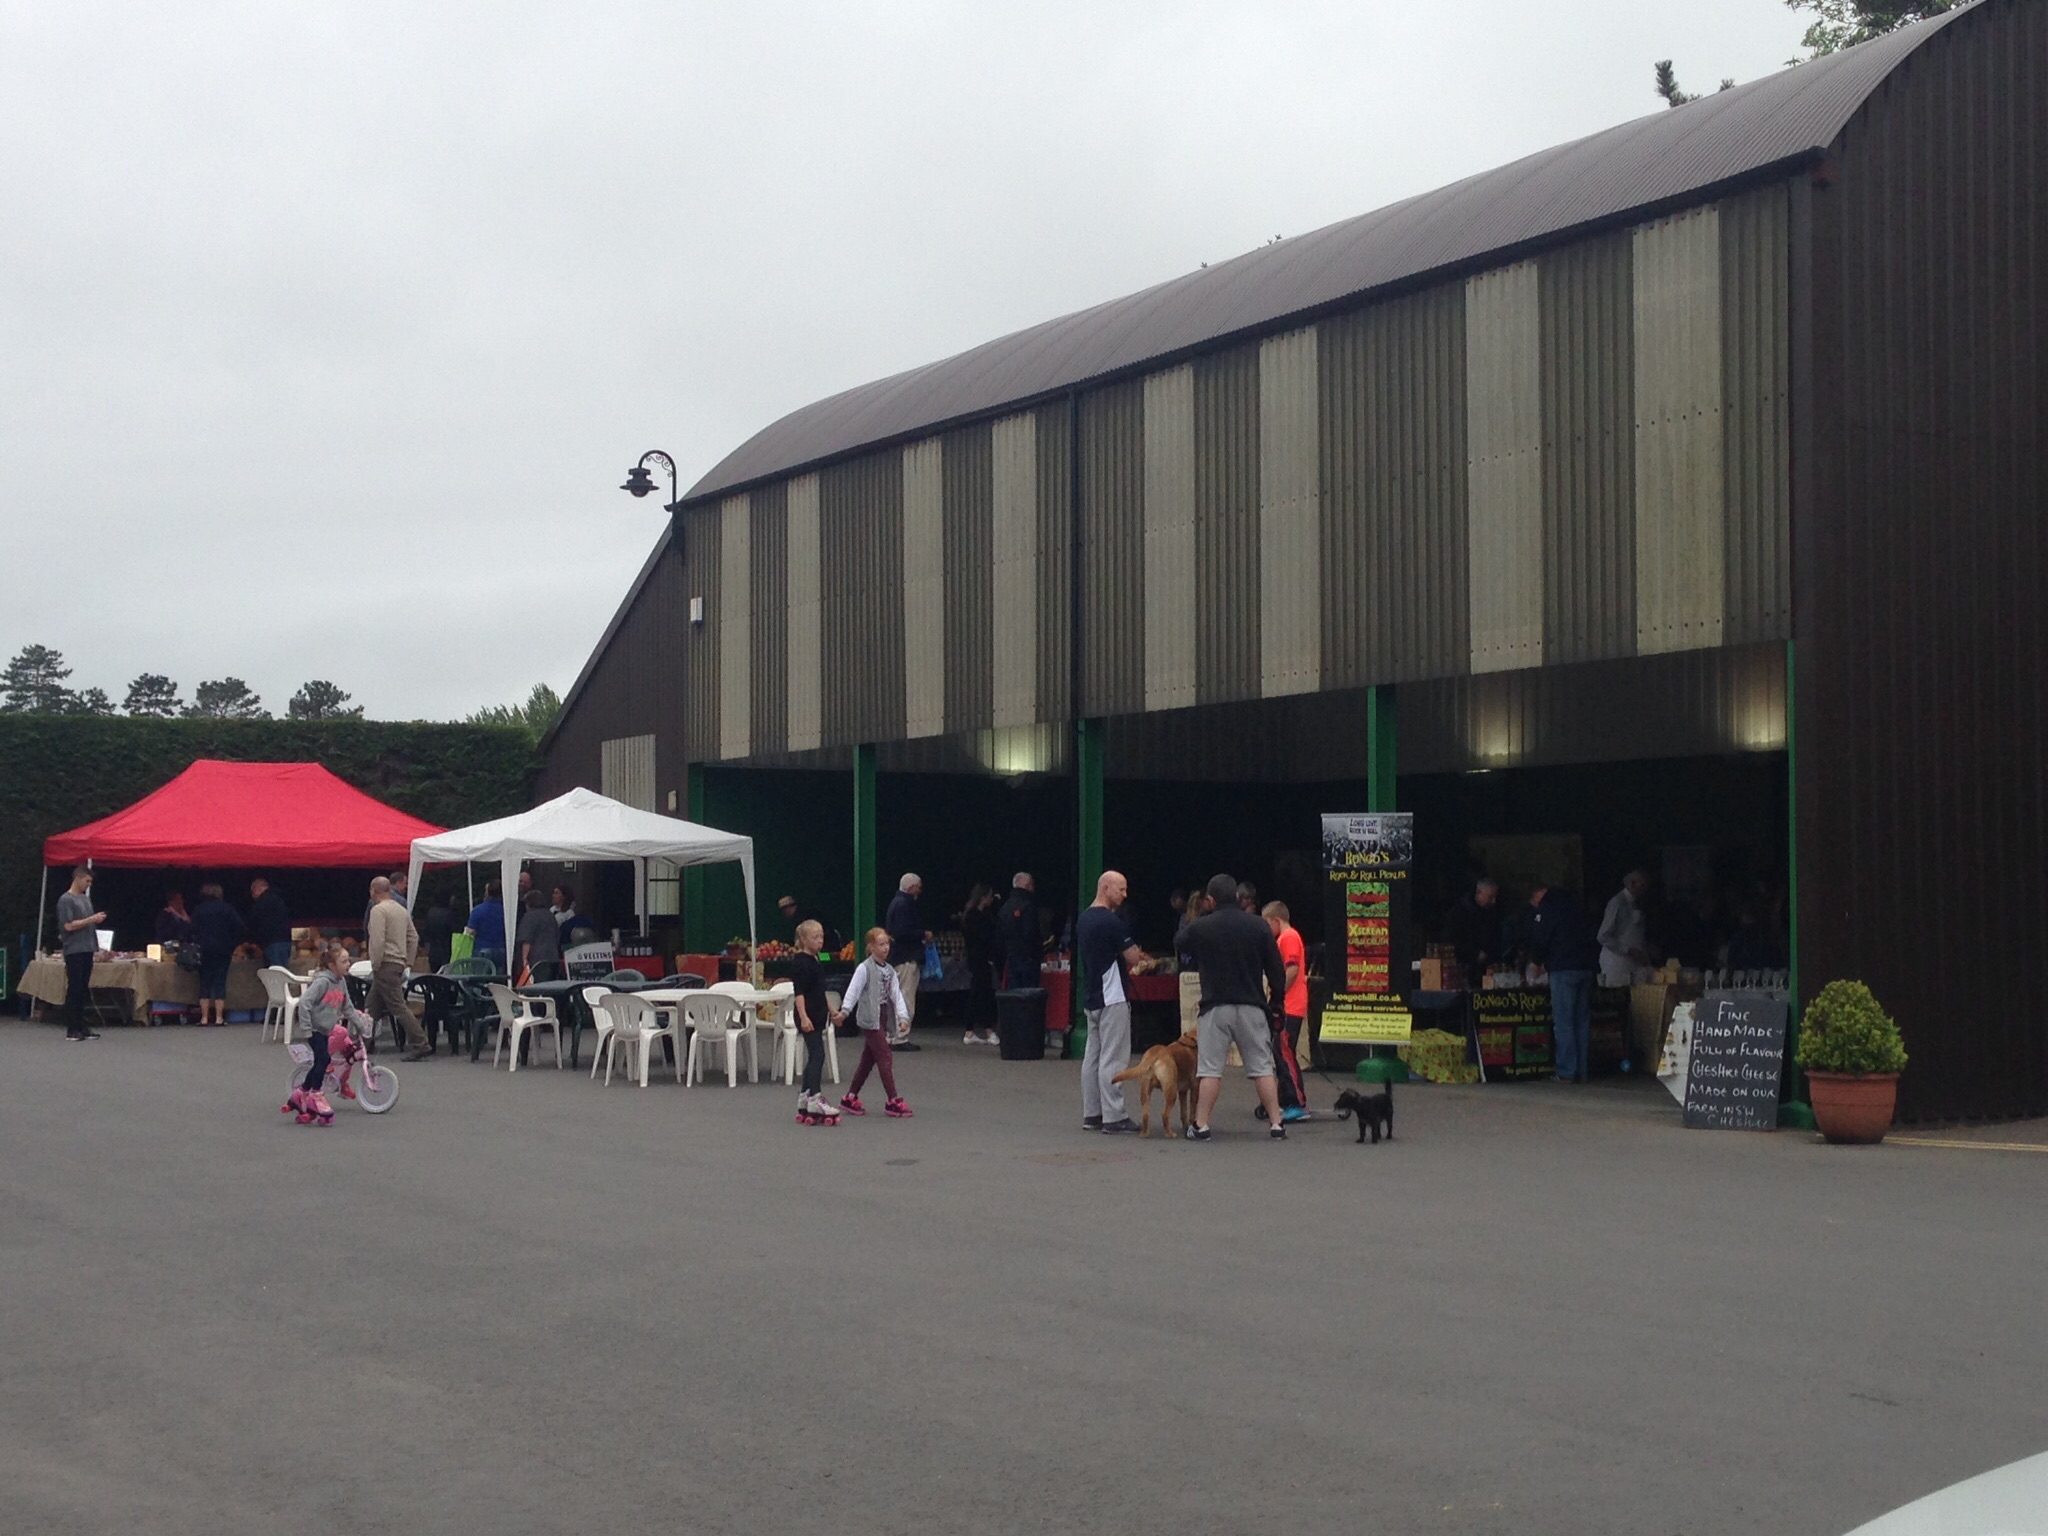 The market is undercover and boasts a really complete range of foodie treats